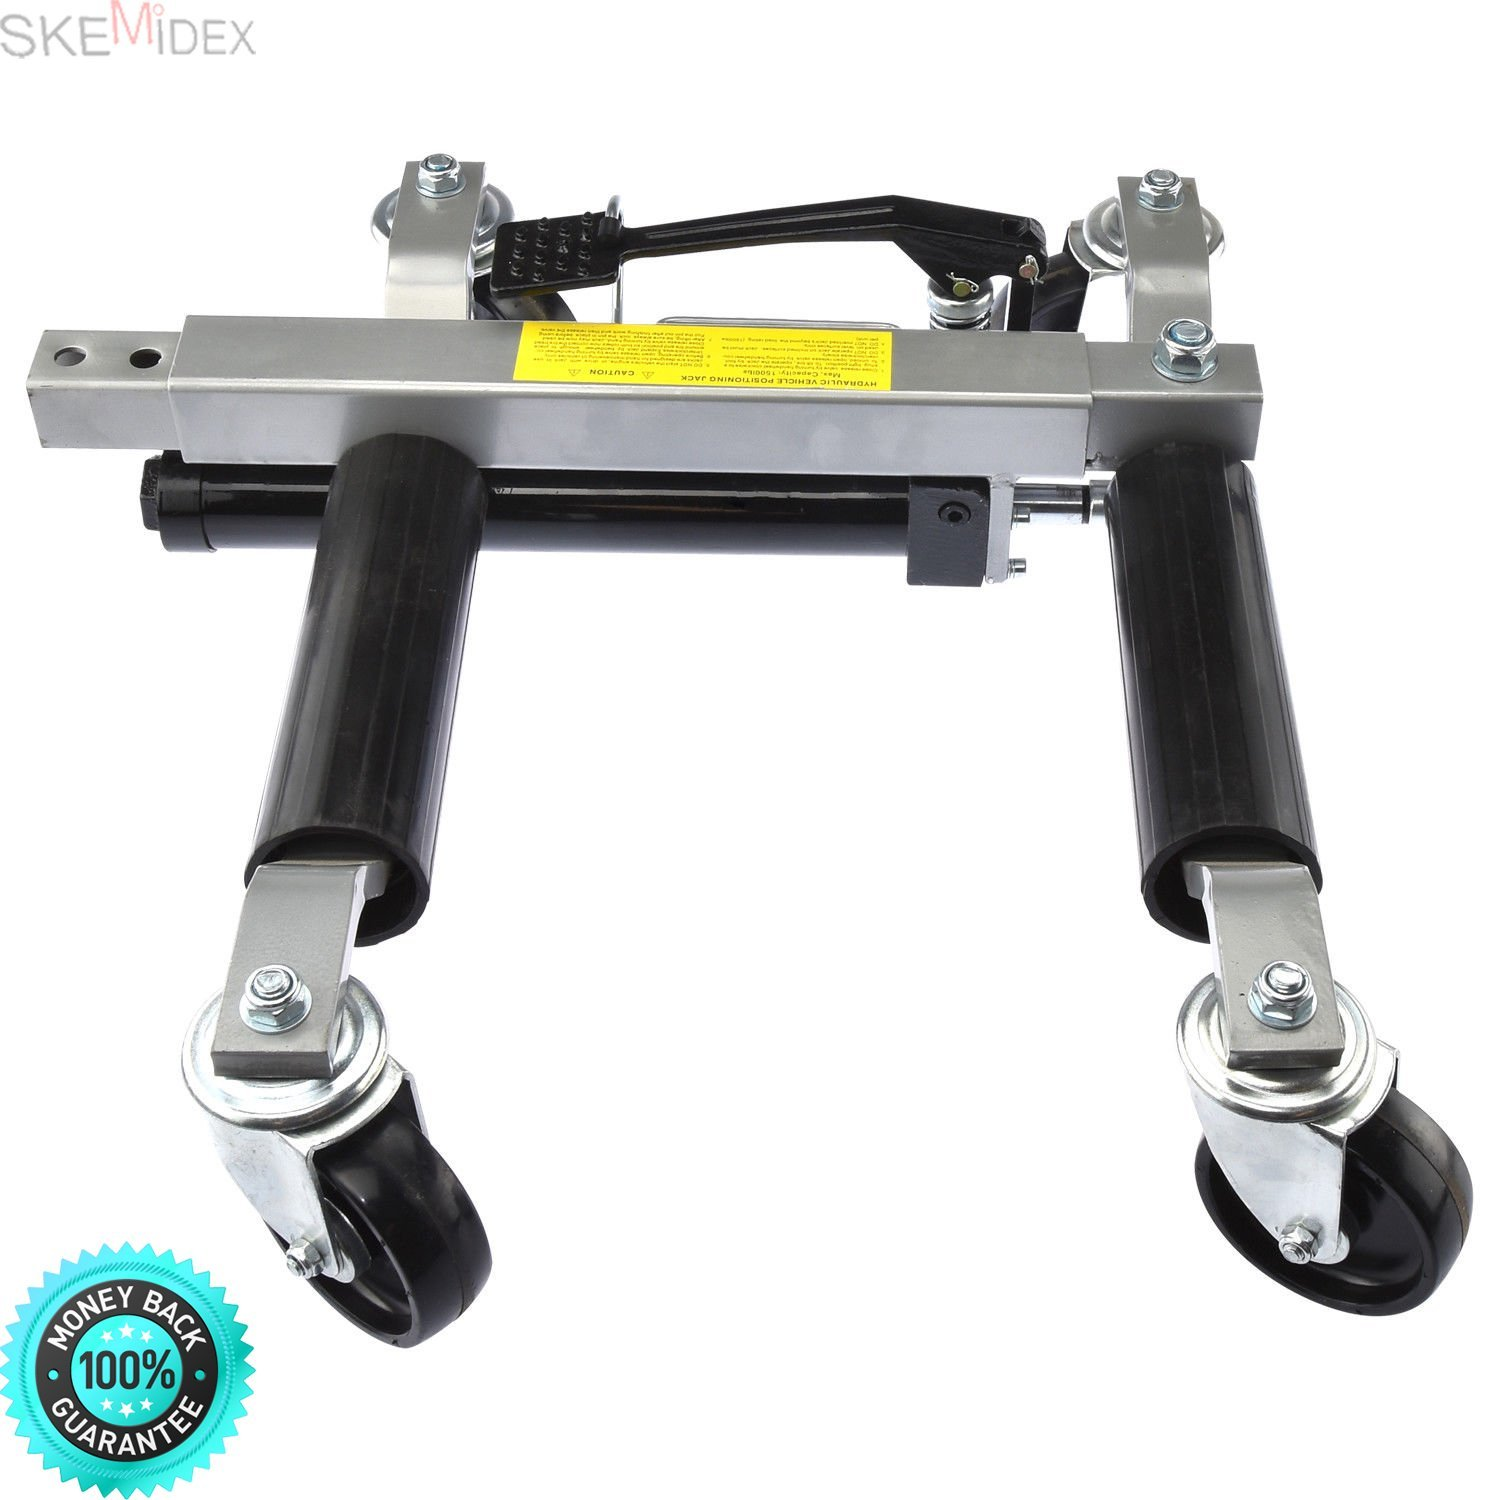 Cheap Portable Car Jack Lift, find Portable Car Jack Lift